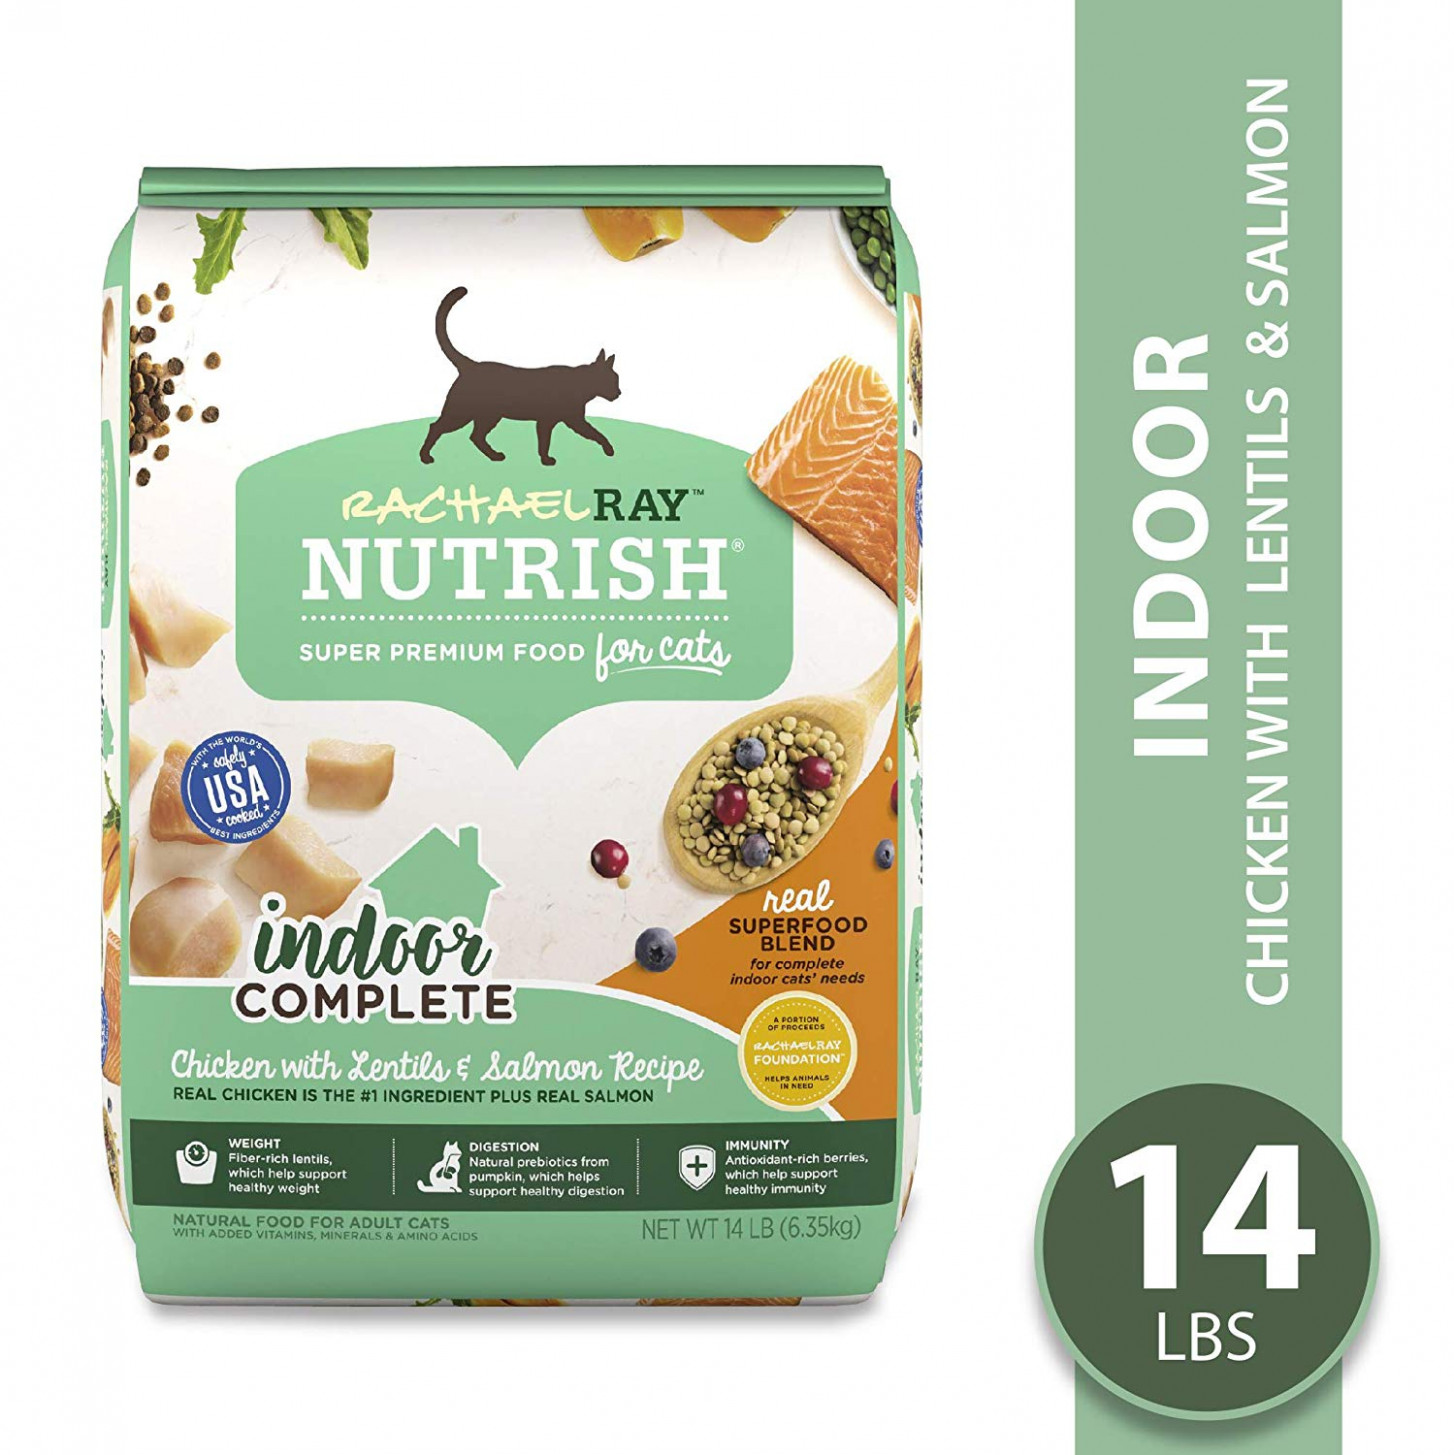 Rachael Ray Nutrish Superfood Blends Dry Cat Food - rachael ray recipes chicken